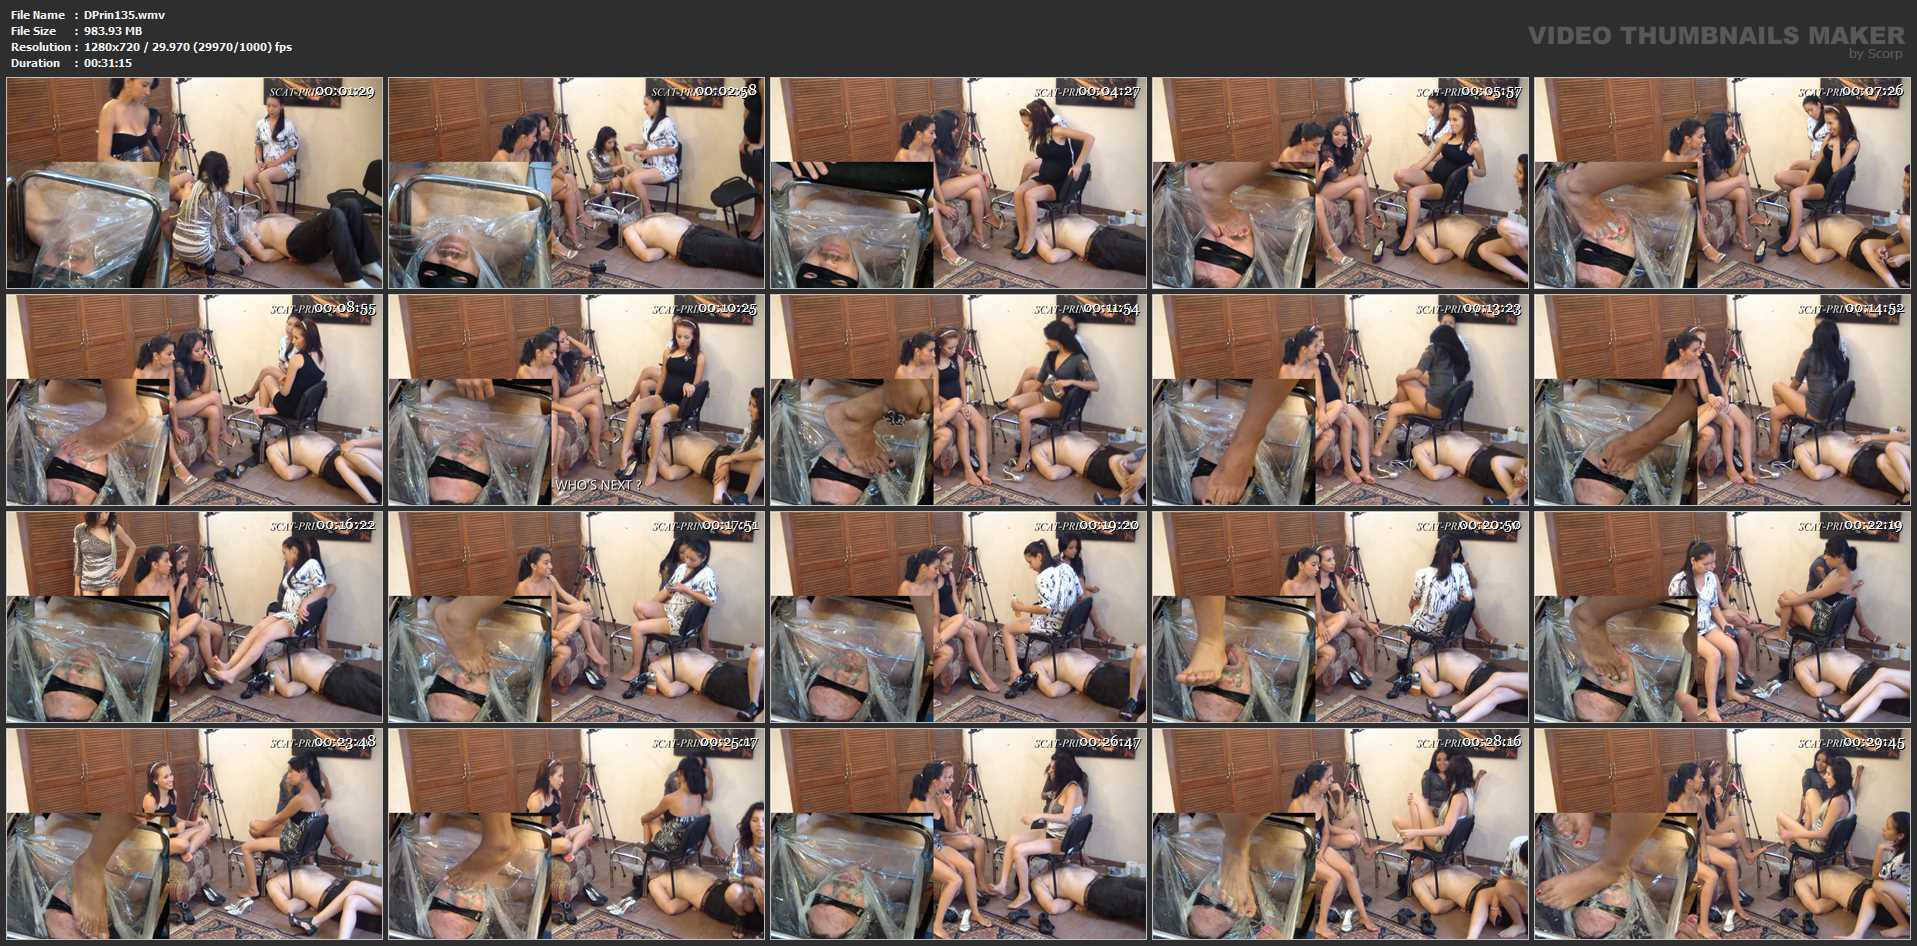 [DOM-PRINCESS] When Shit piles up on his Face, this is what happens Part 1 [HD][720p][WMV]